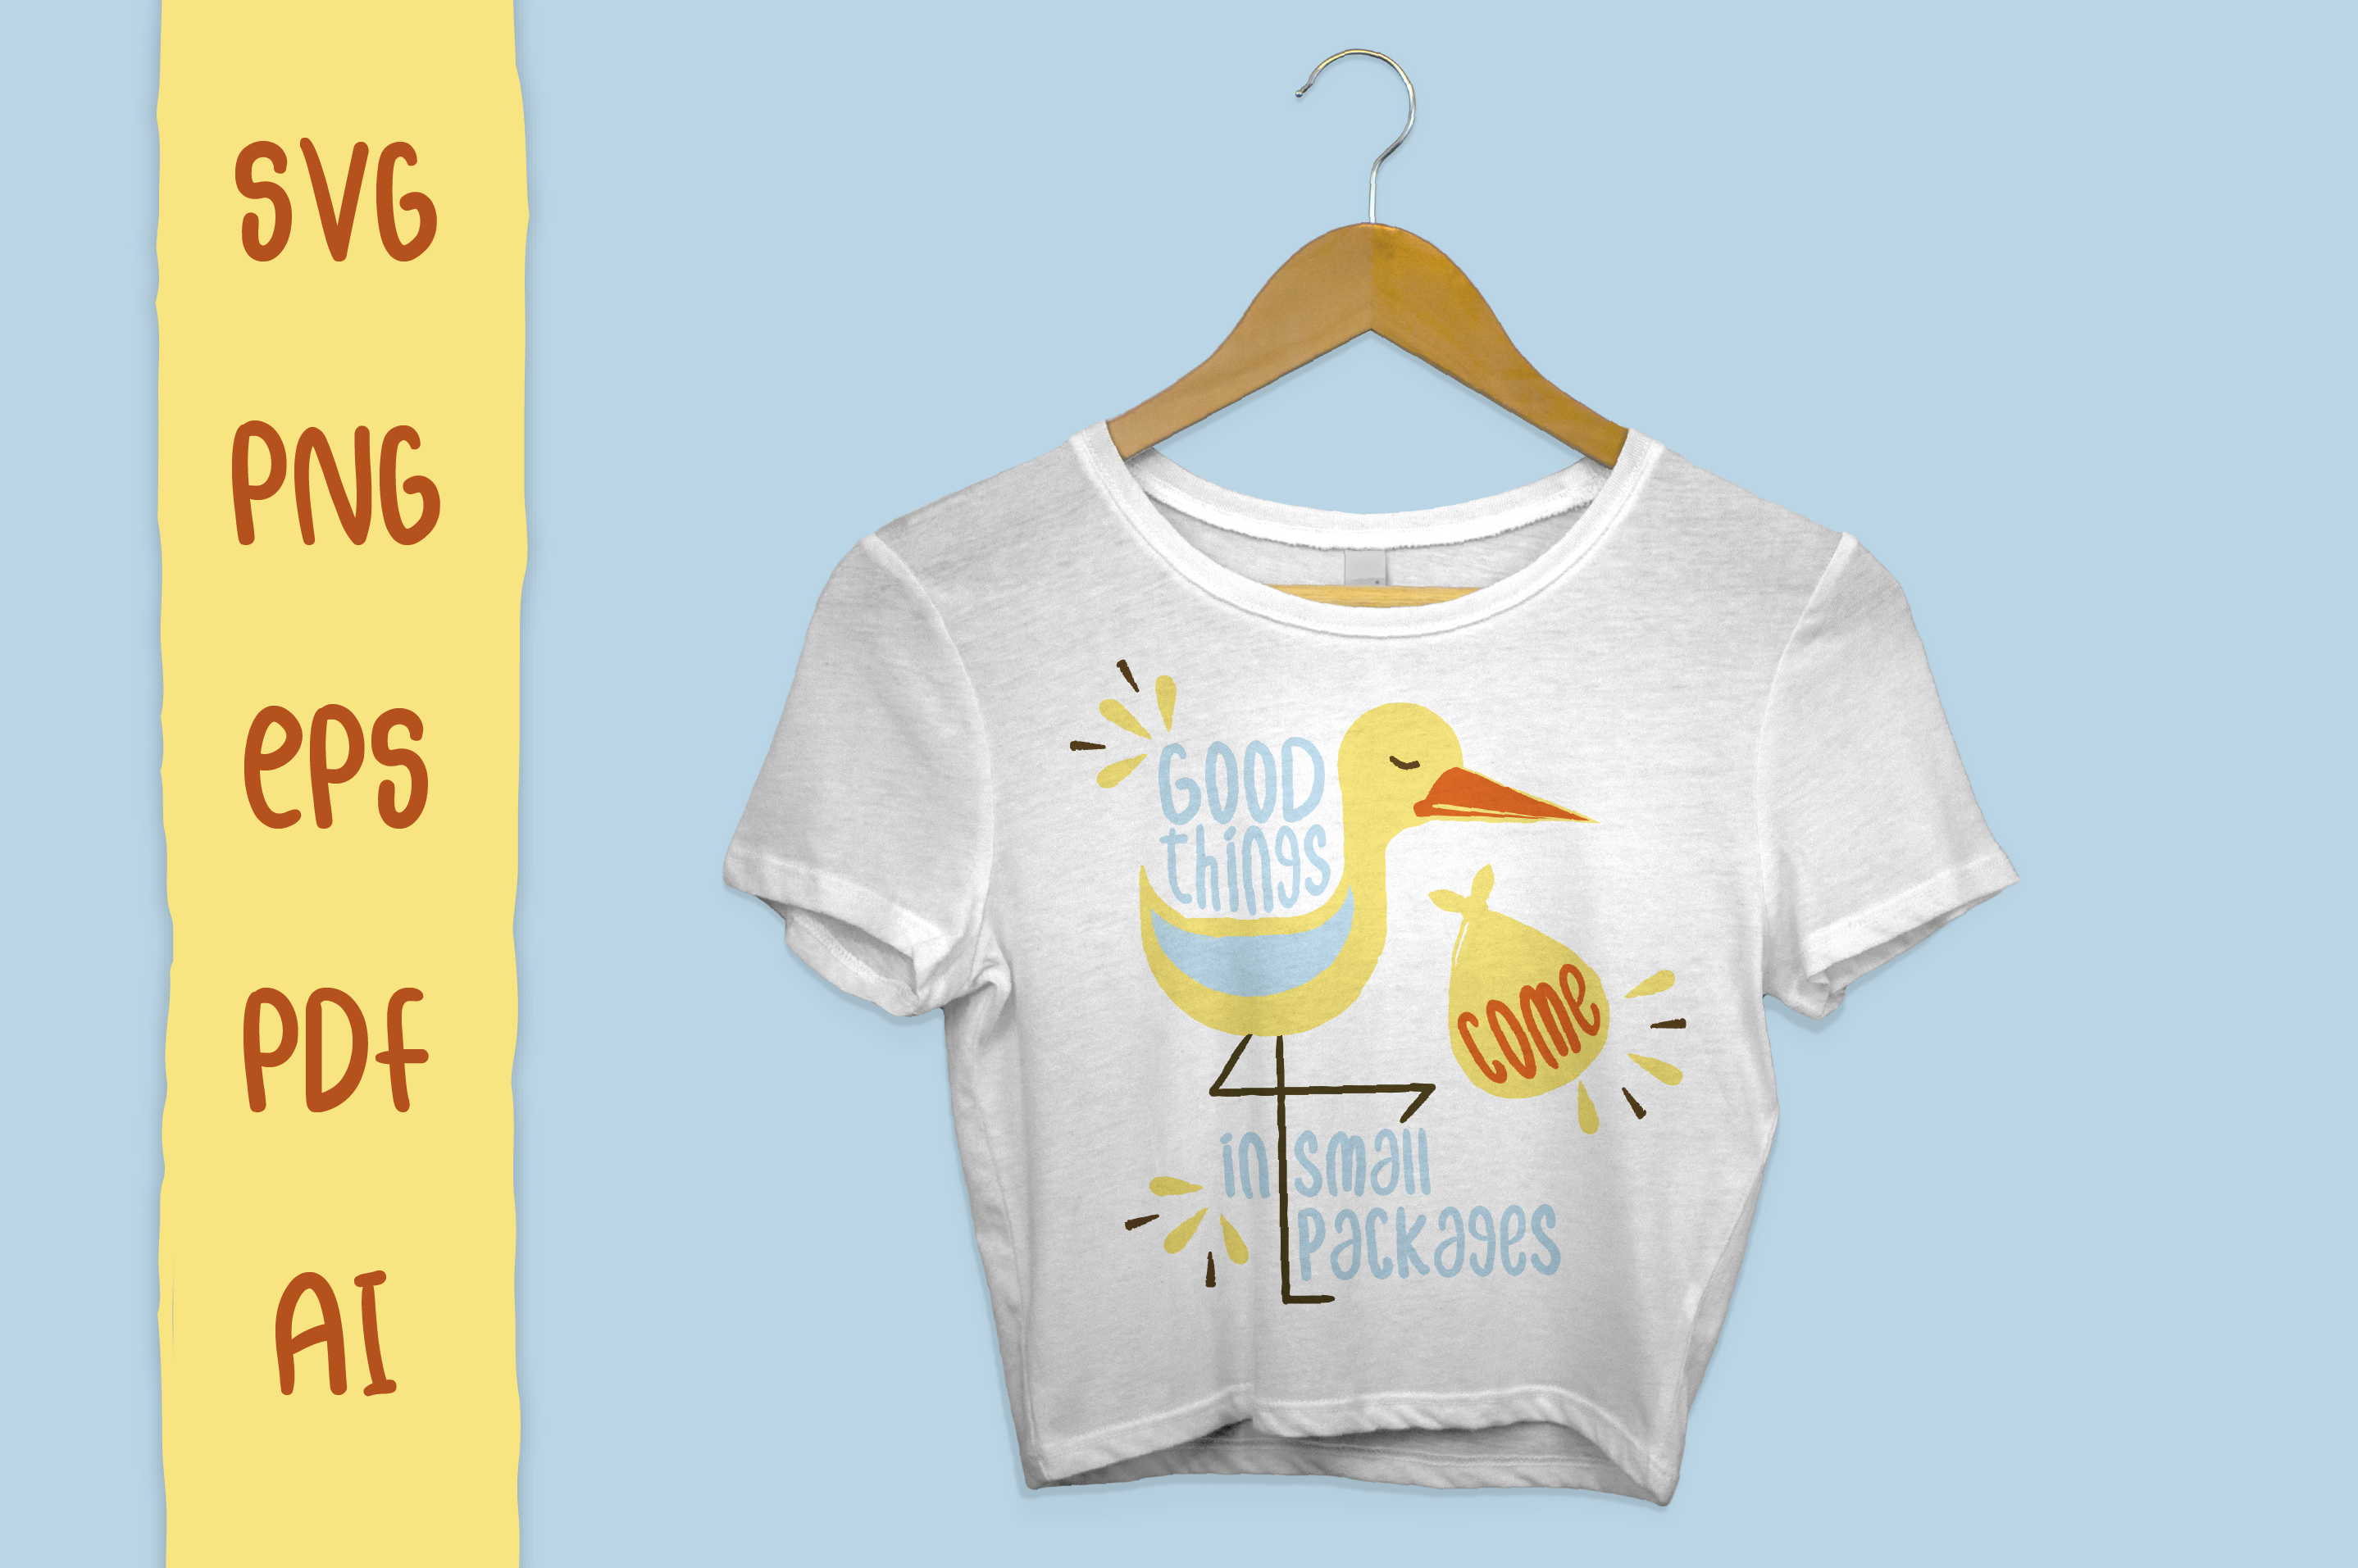 Pregnancy Stork Package - SVG Files for Crafters example image 1